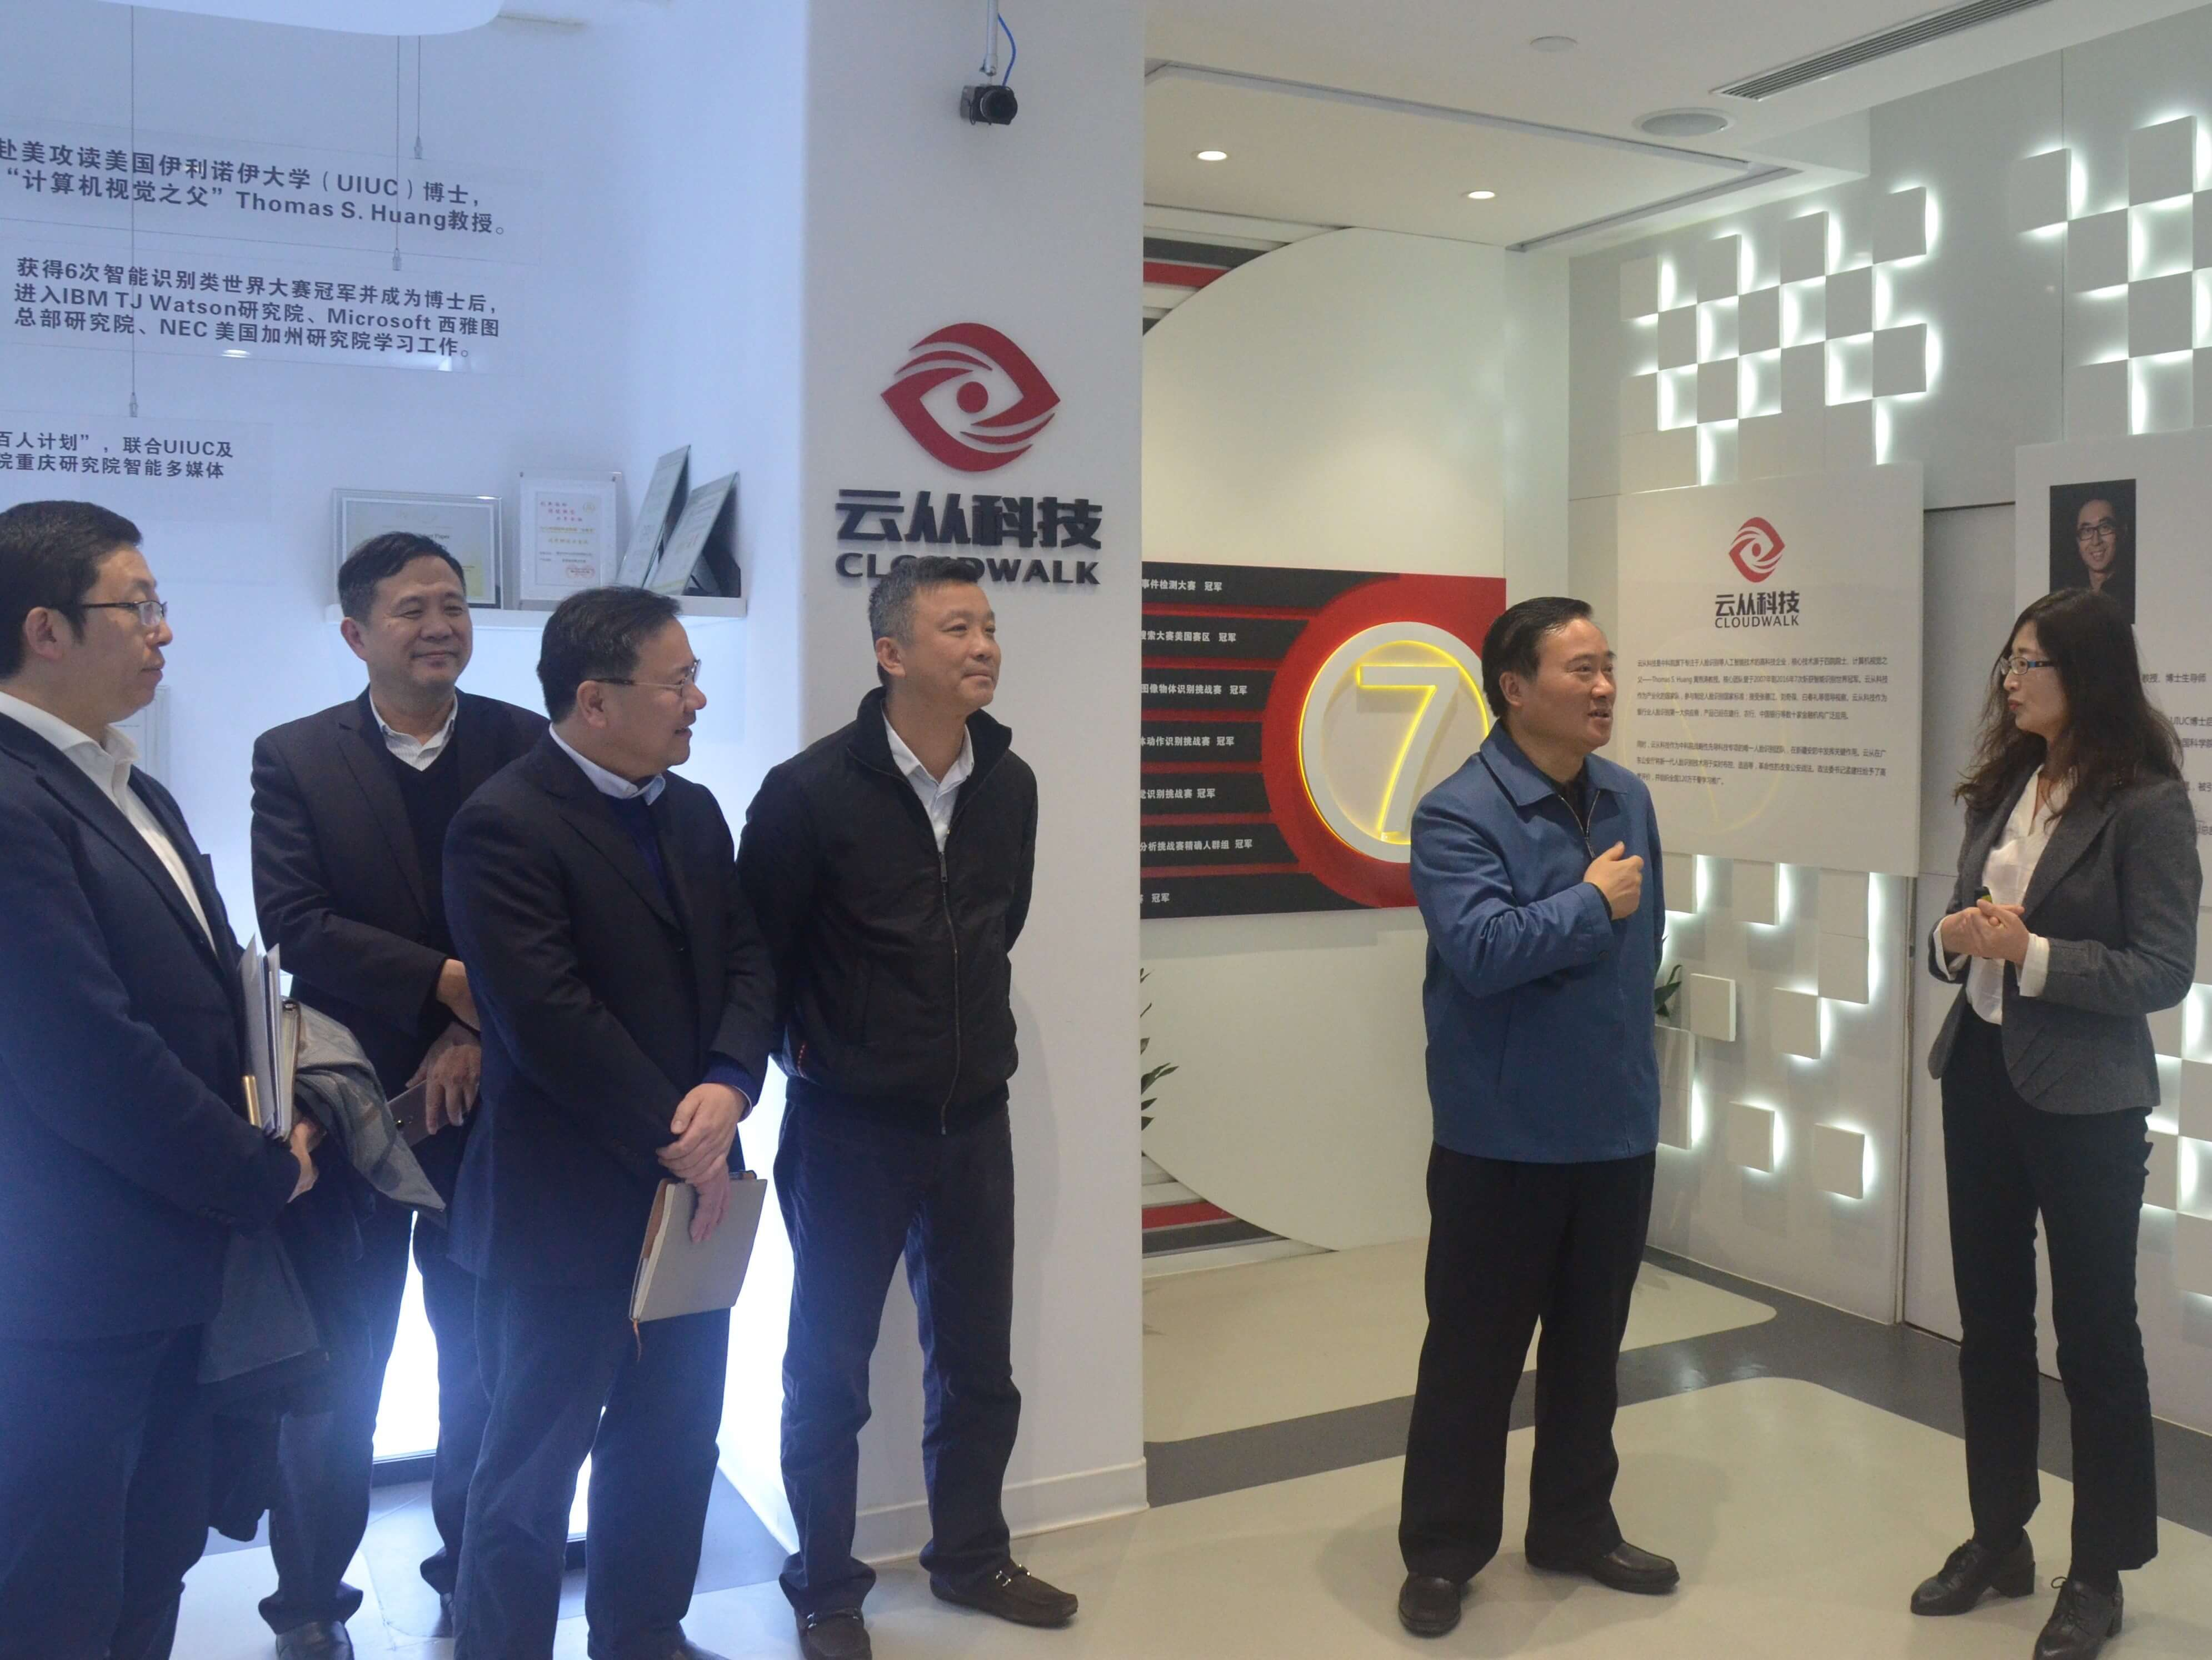 Secretary of the Pudong New Area District Committee WENG Zuliang Visits Cloudwalk